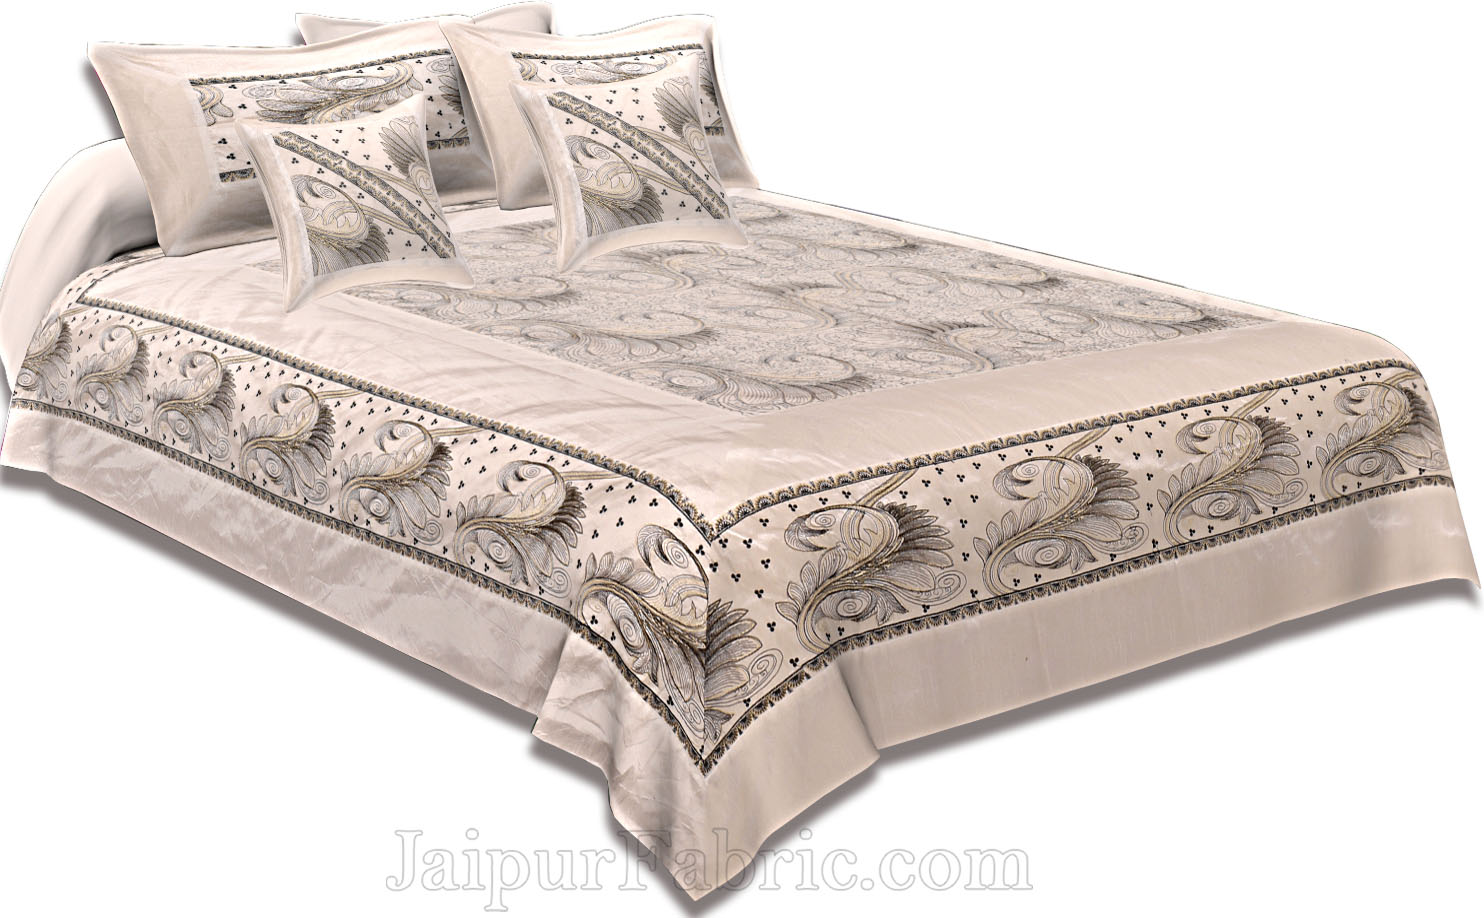 Silk Bed Sheet  White Color With Lace Work Superfine bed cover